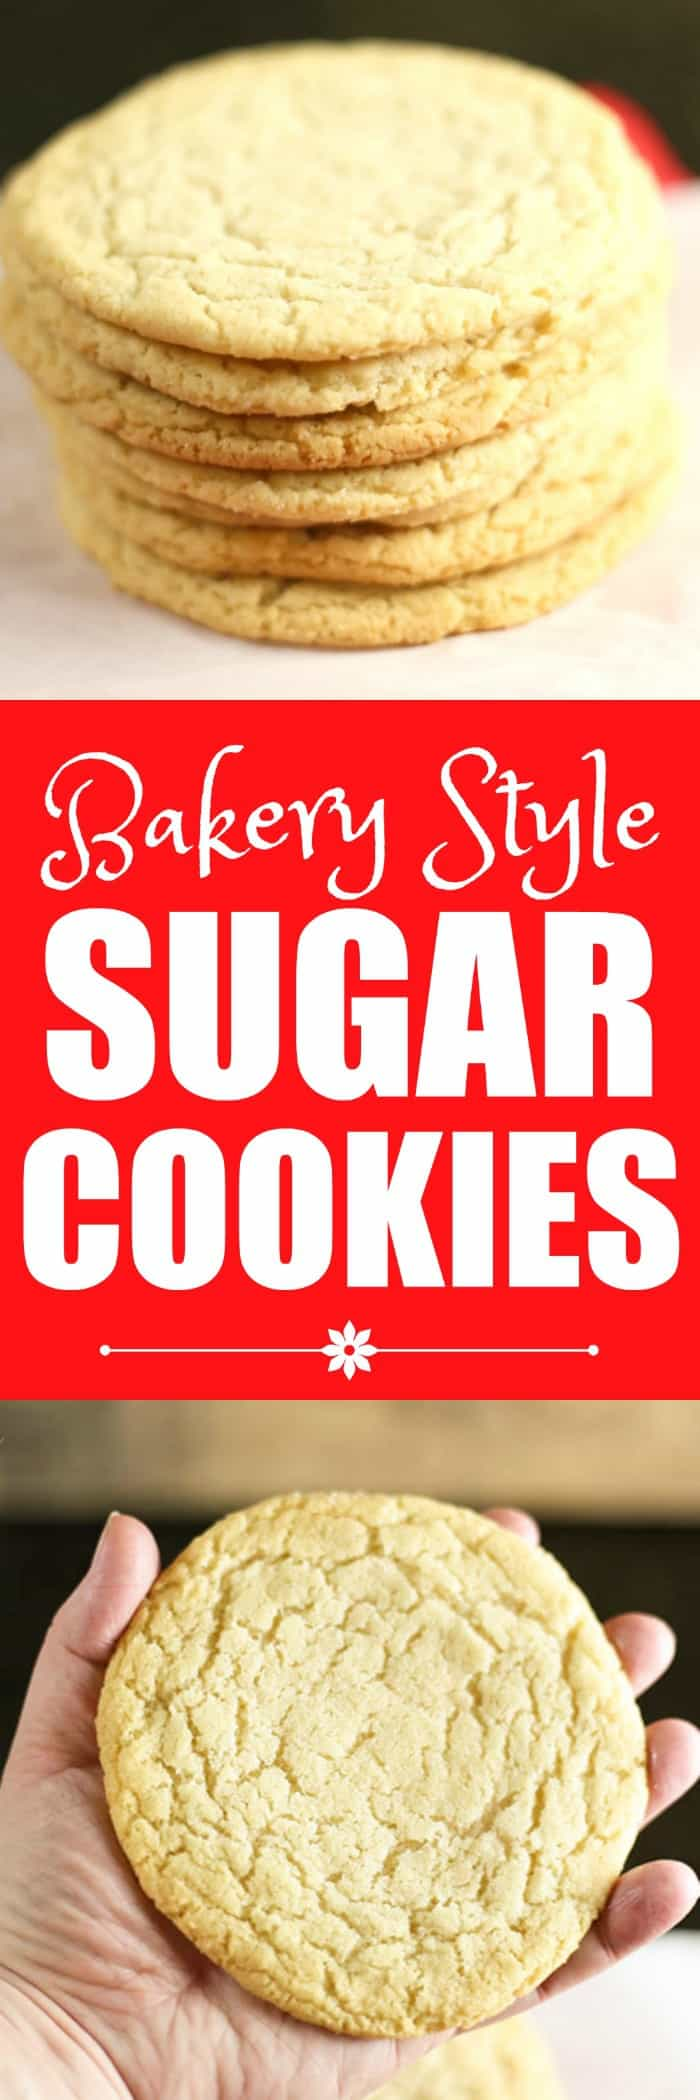 Bakery Style Sugar Cookies - Rose Bakes